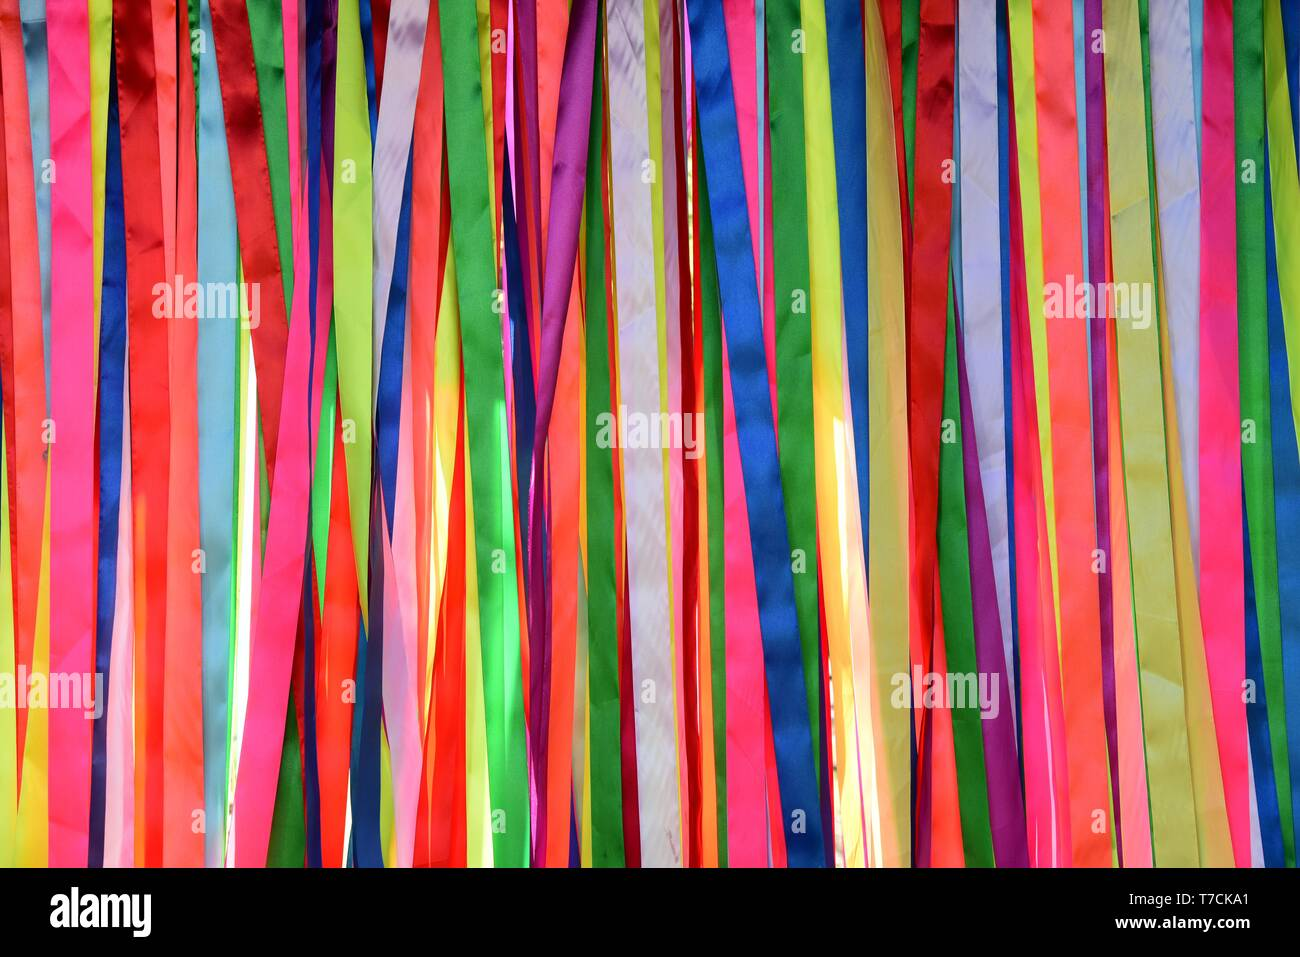 This `spectrum of colors` is the entrance to the Dino park in Tbilisi. - Stock Image